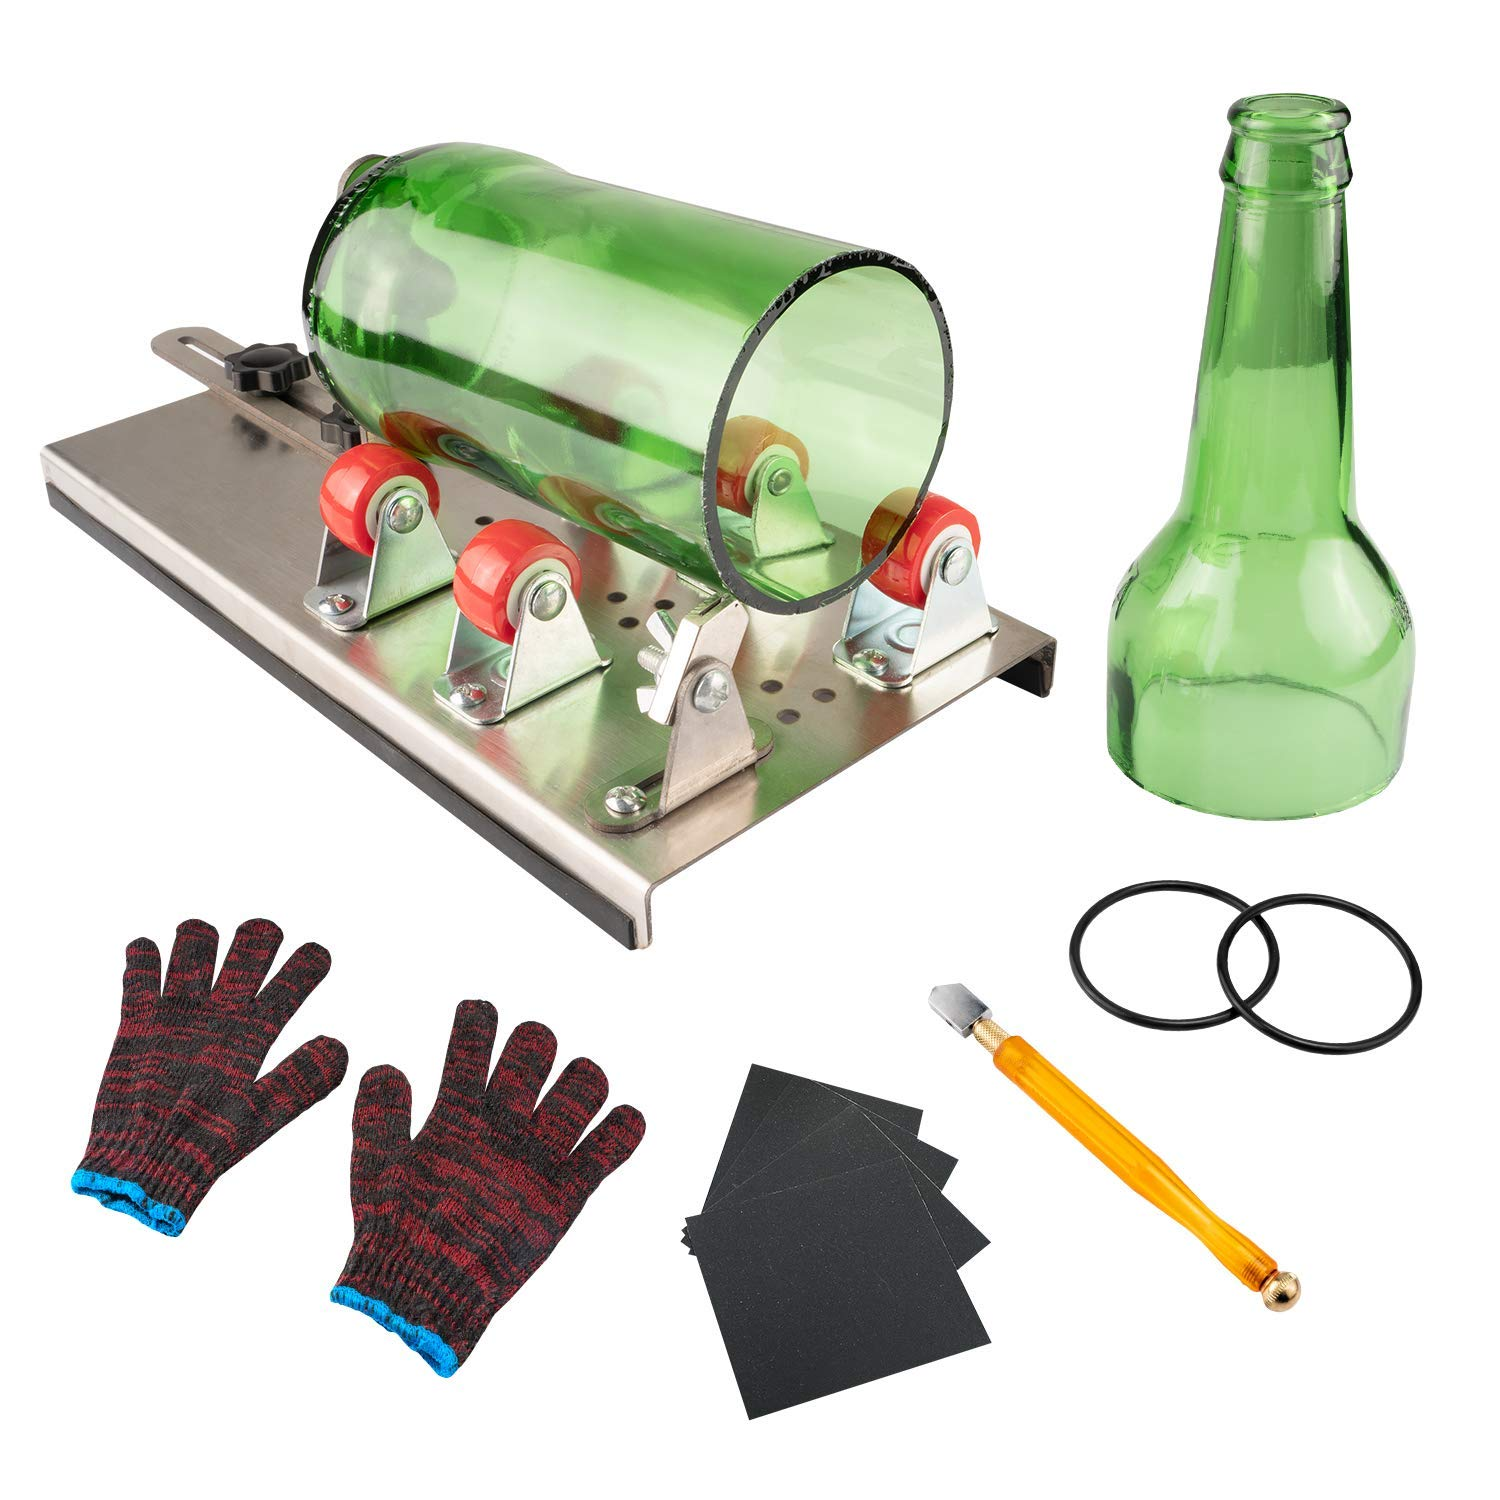 Glass Bottle Cutter, VIBIRIT Glass Cutting Tools with Accessories, DIY Machine Tool Kit for Cutting Round or Square Glass Bottles by VIBIRIT